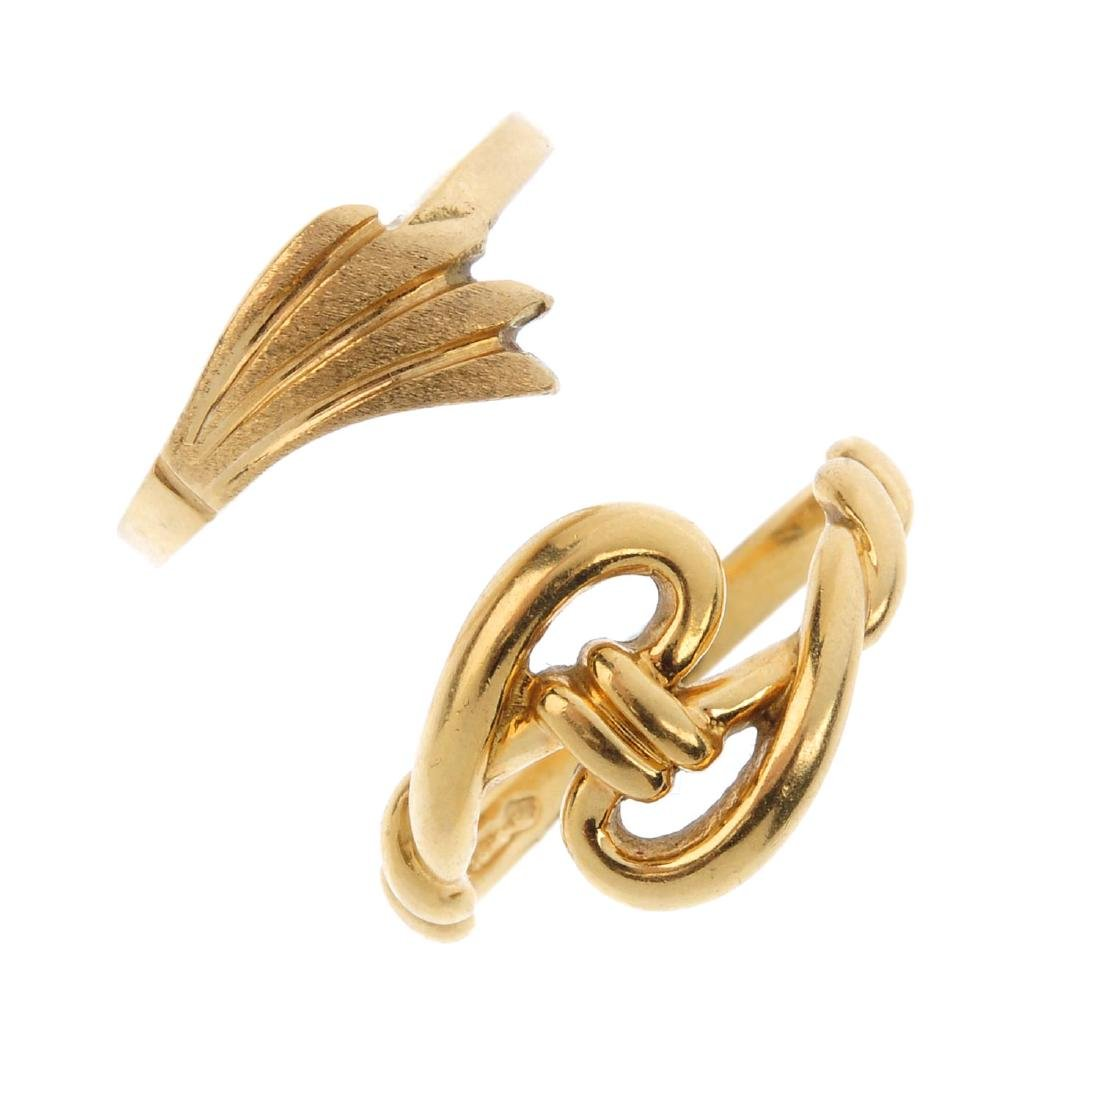 Two rings. The first designed as a stylised knot ring,